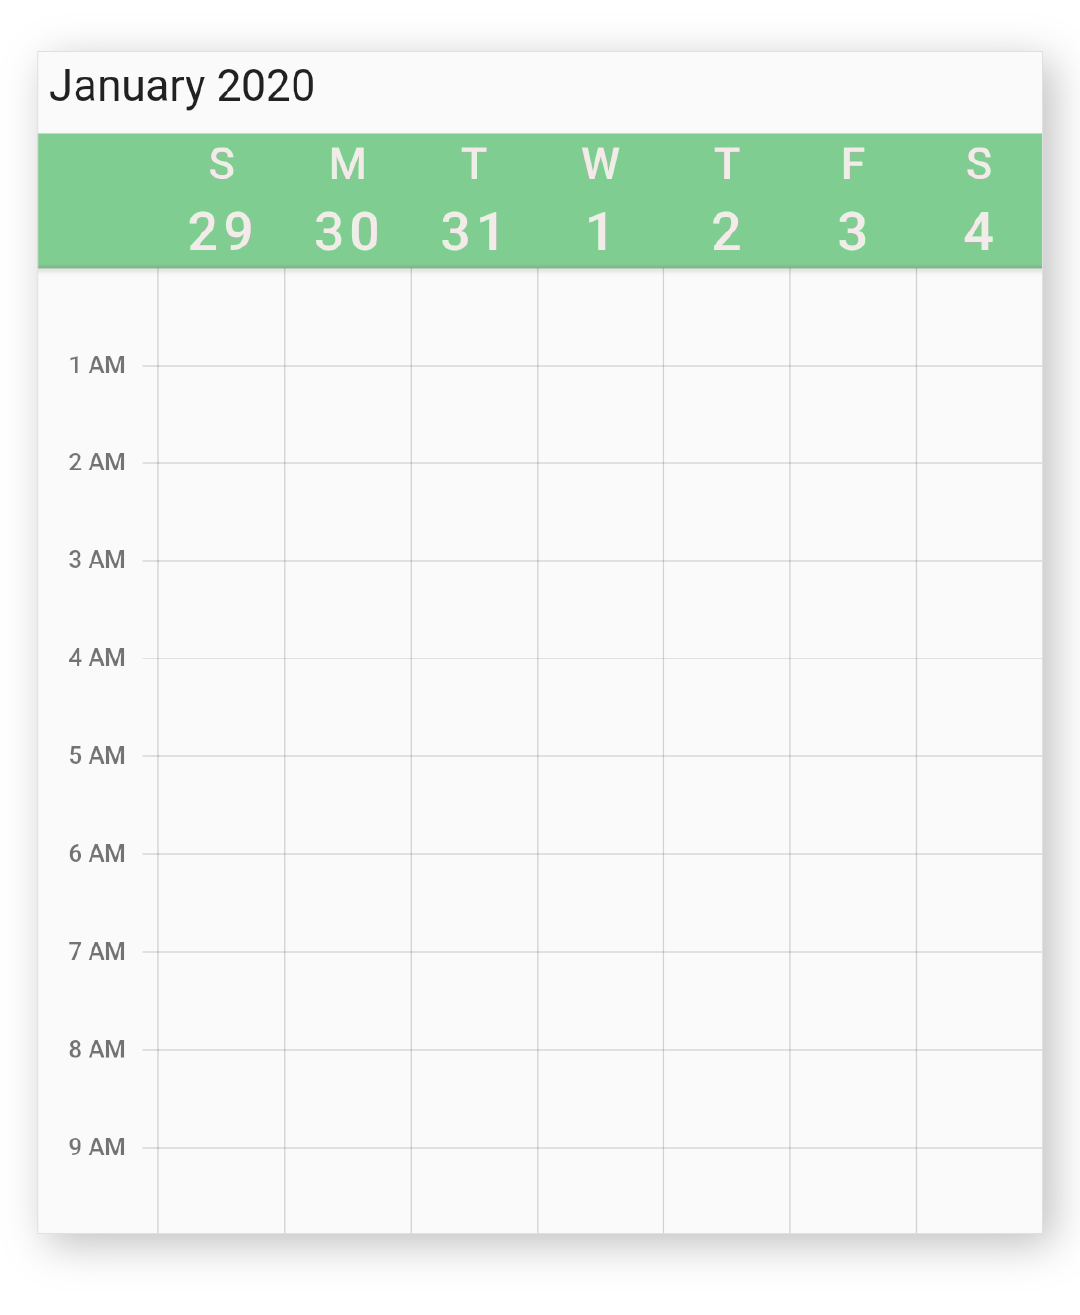 view header with different style in calendar